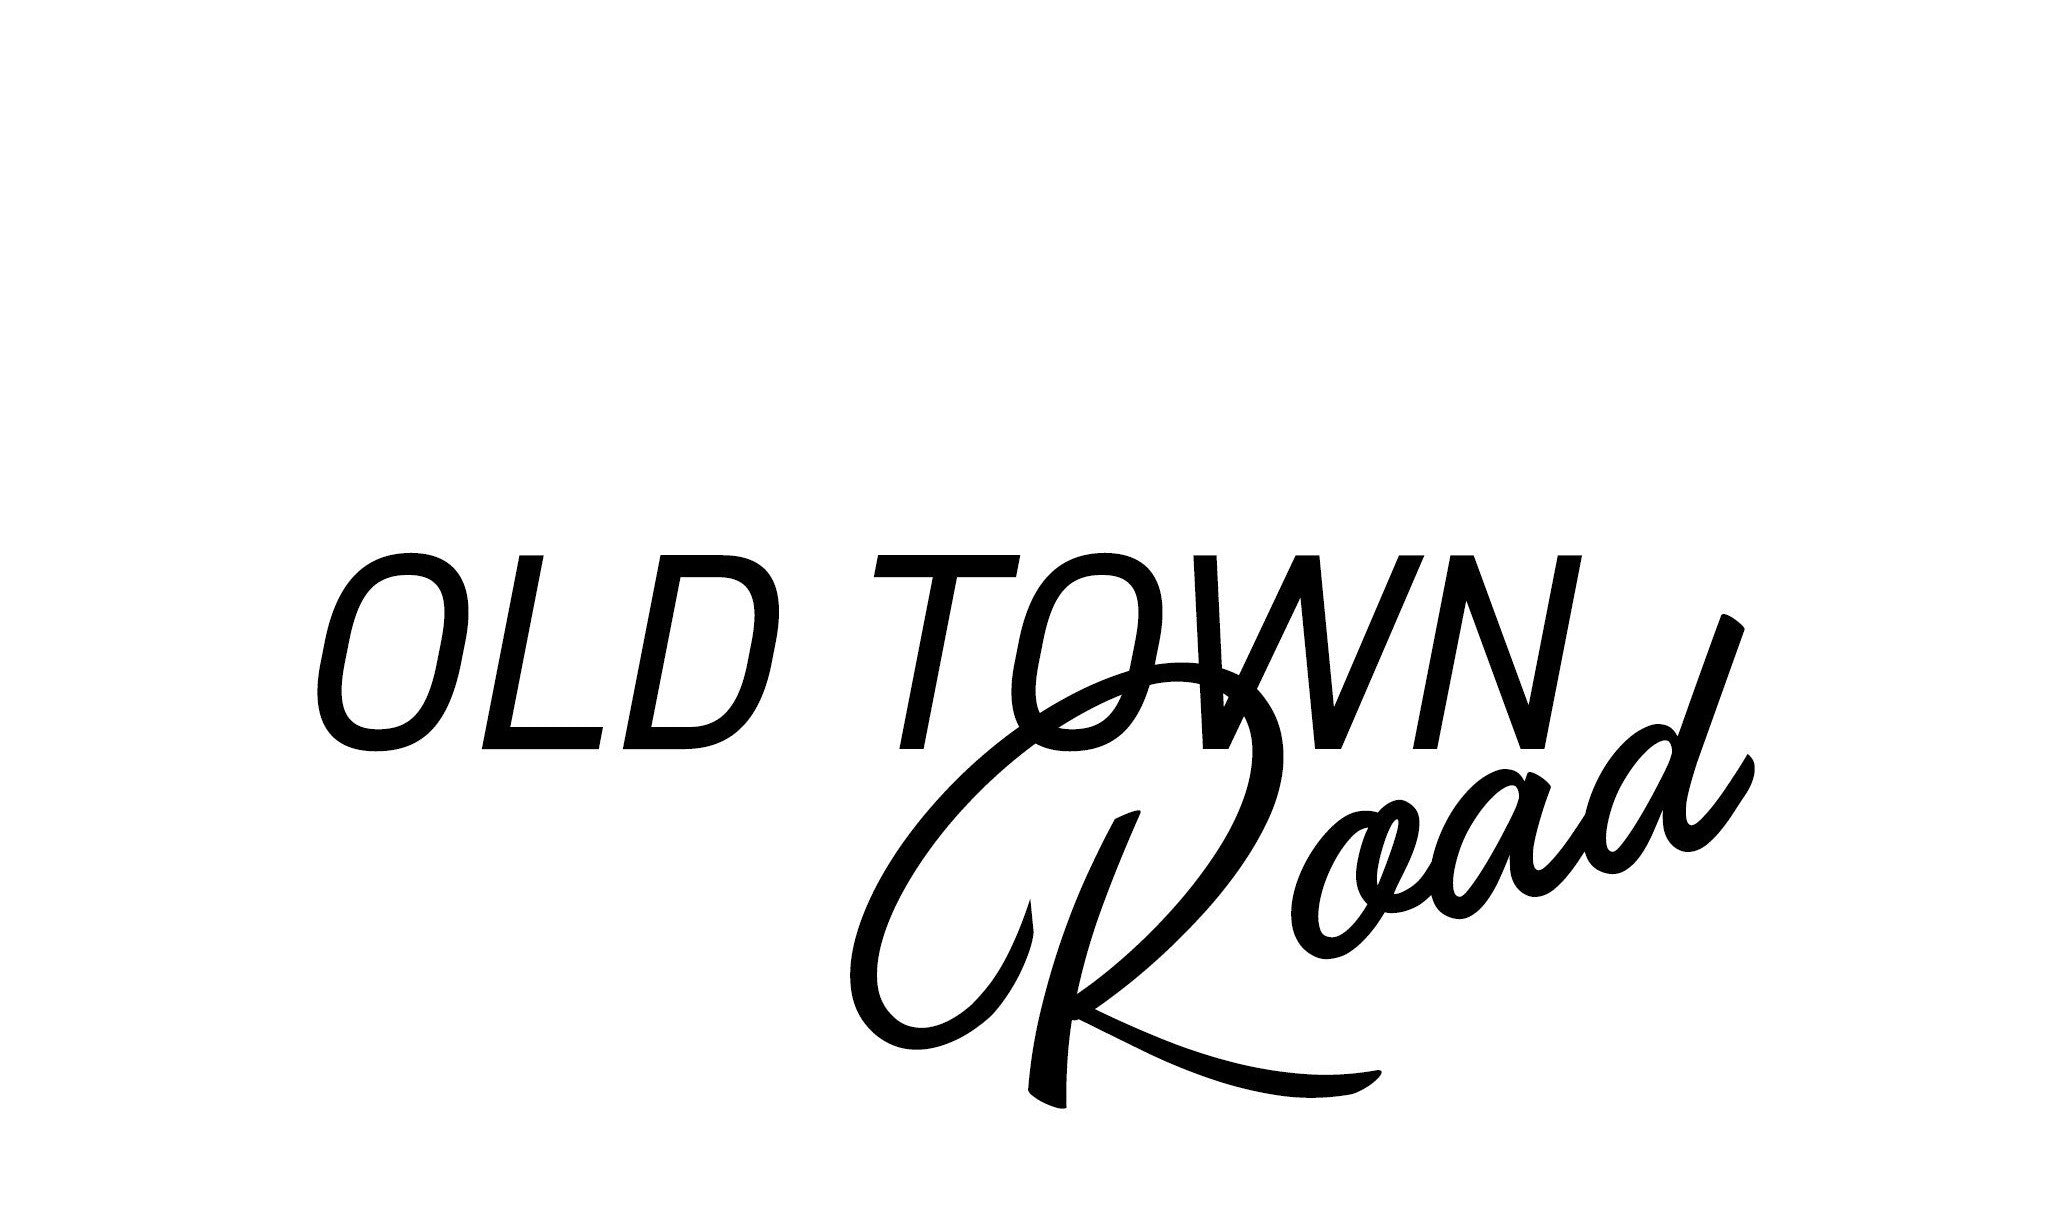 Title - Old Town Road